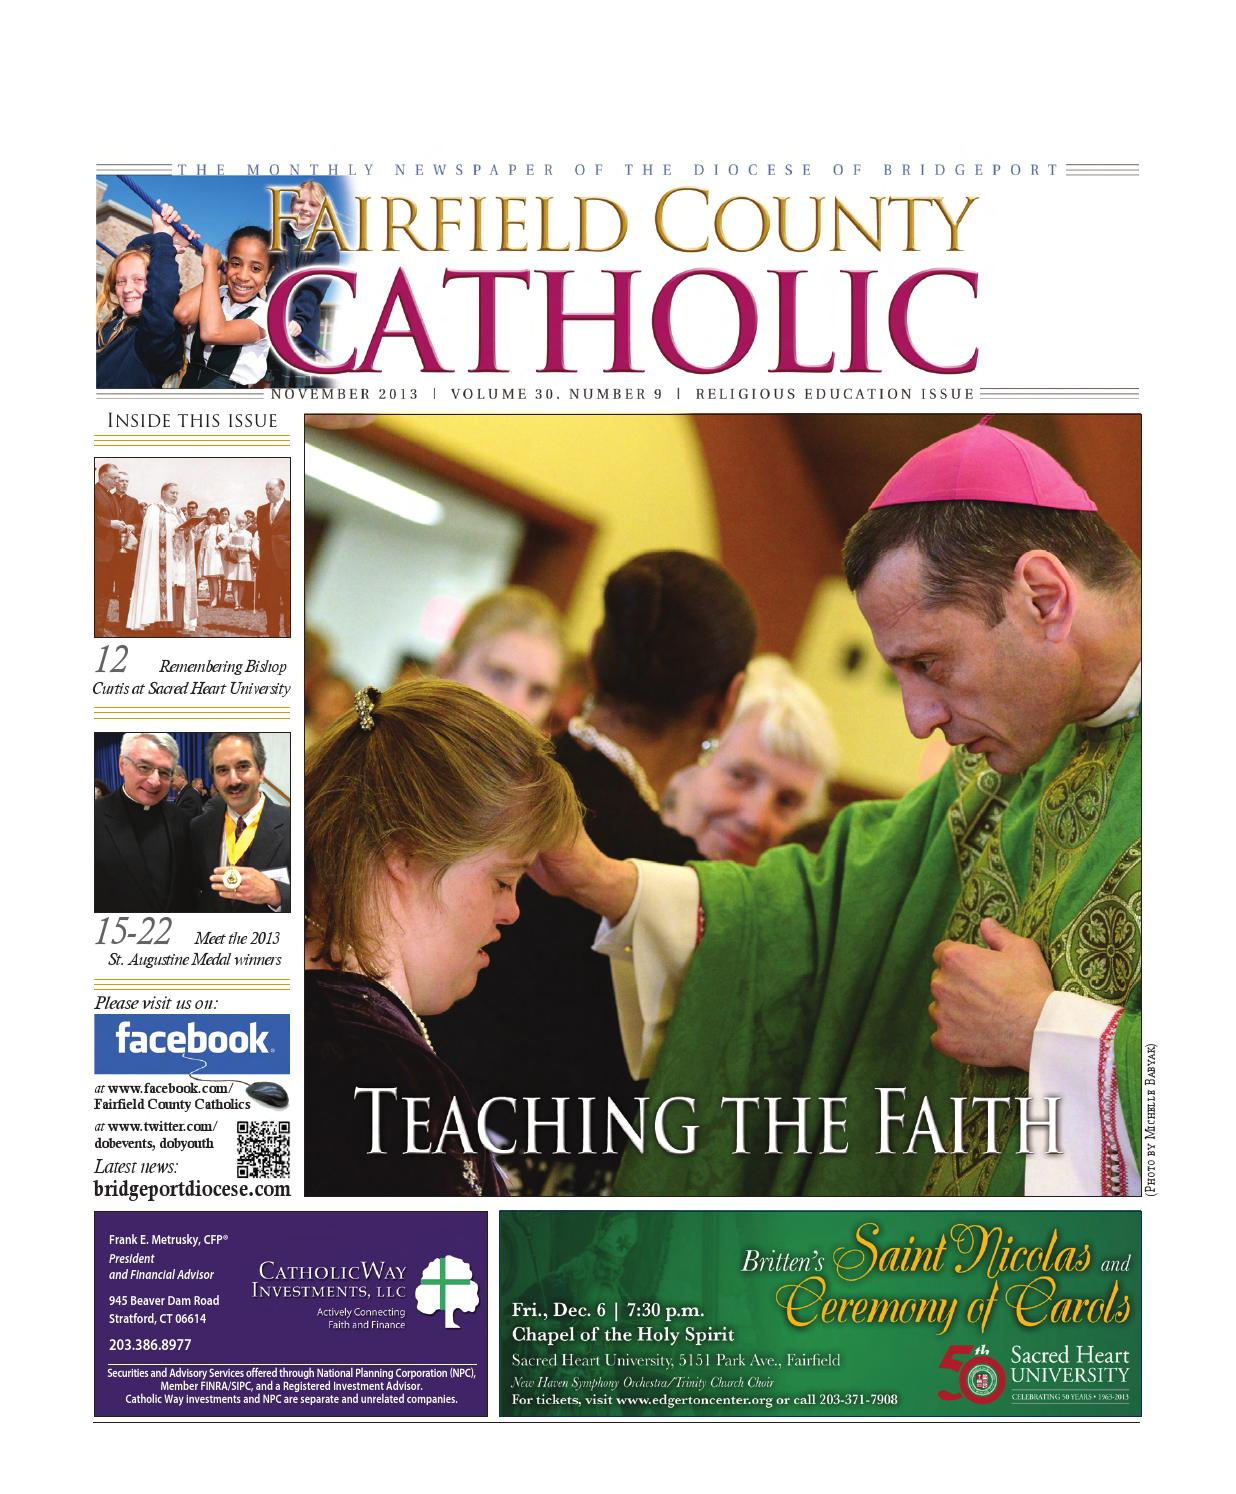 fairfield county catholic singles All opportunities show filters for graduates of lancaster high school or fisher catholic high school to pursue a in 2005 for residents of fairfield county.